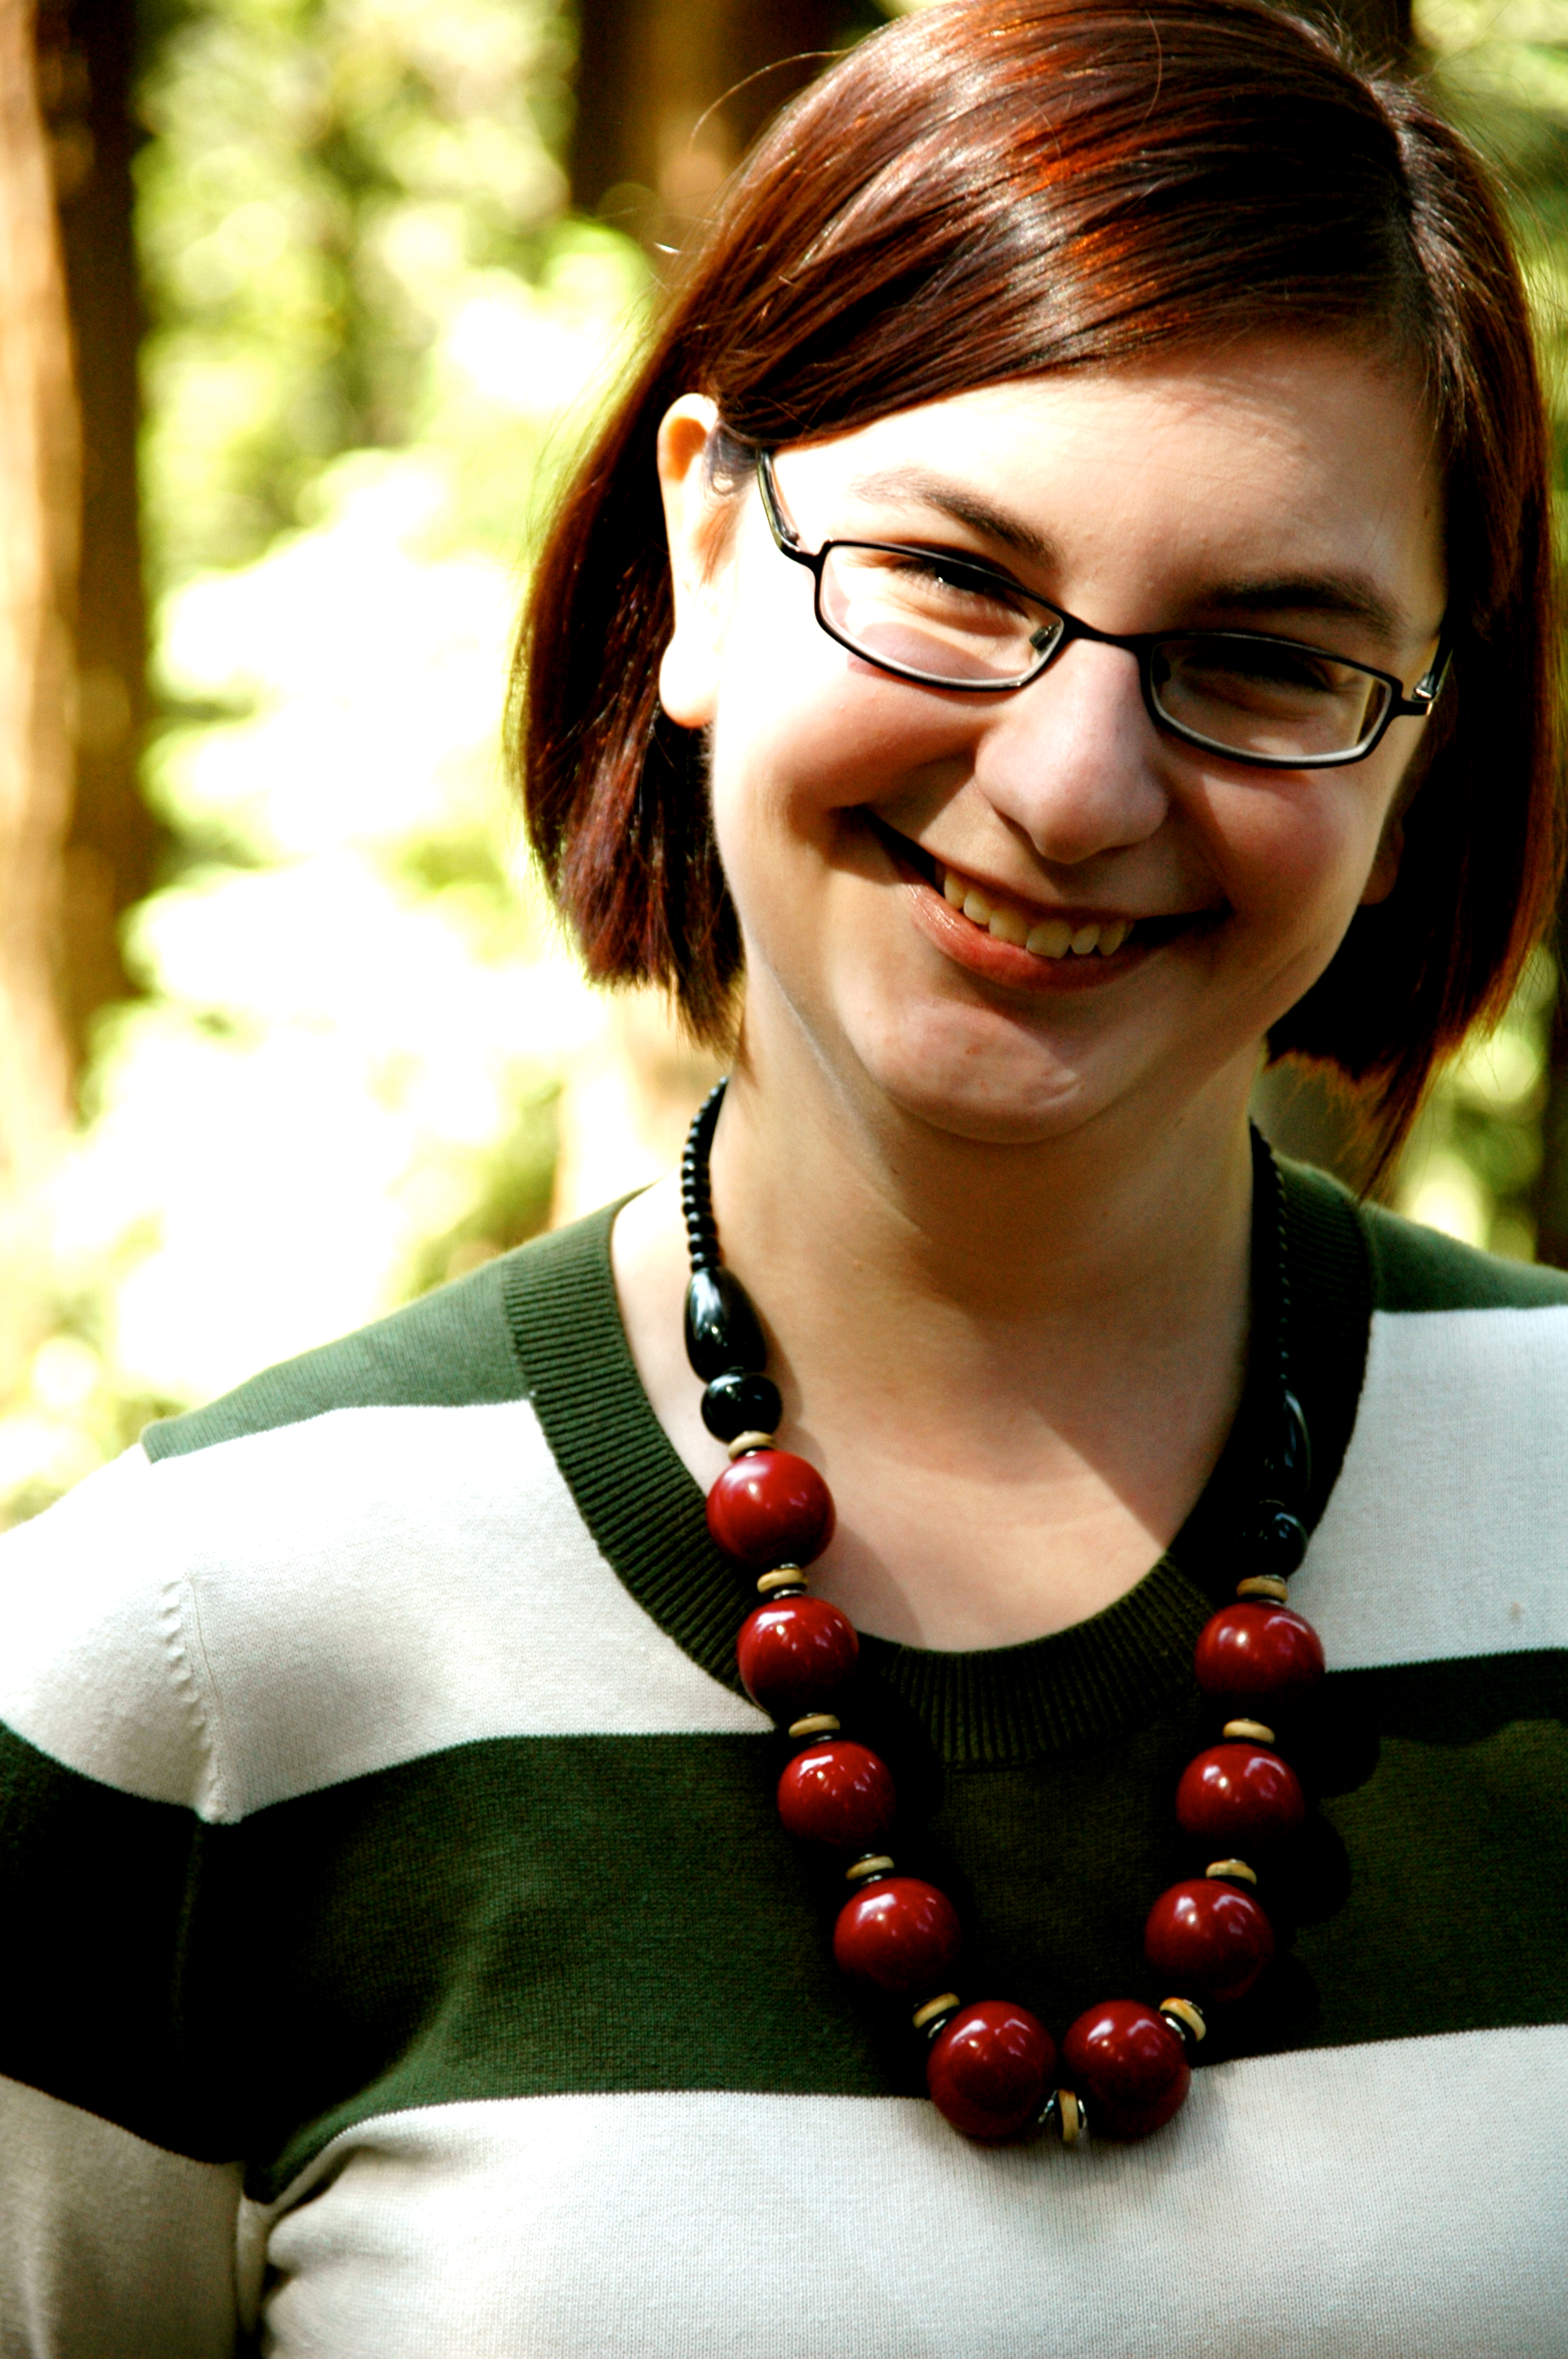 Q&A: JACQUE ALBERTA, ACQUISITIONS EDITOR FOR YA AT ZONDERVAN AND EDITOR AT BLINK